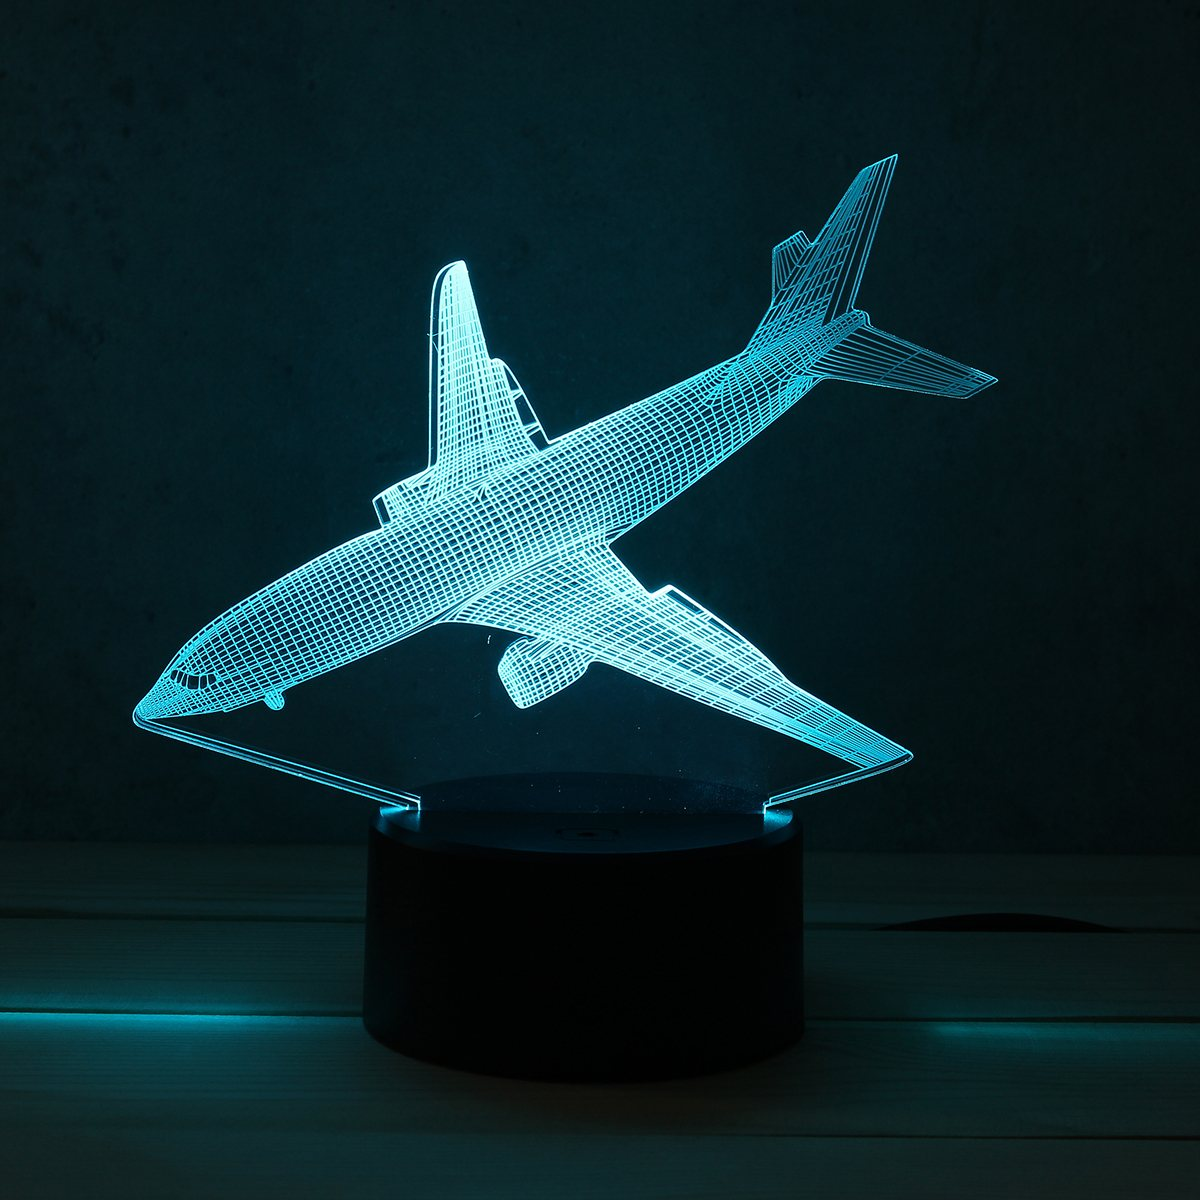 7 Color Airplane Acrylic LED 3D LED Night Light Toys Lamp Air Plane Night Touch Table Desk Light DC5V For Kid Christmas